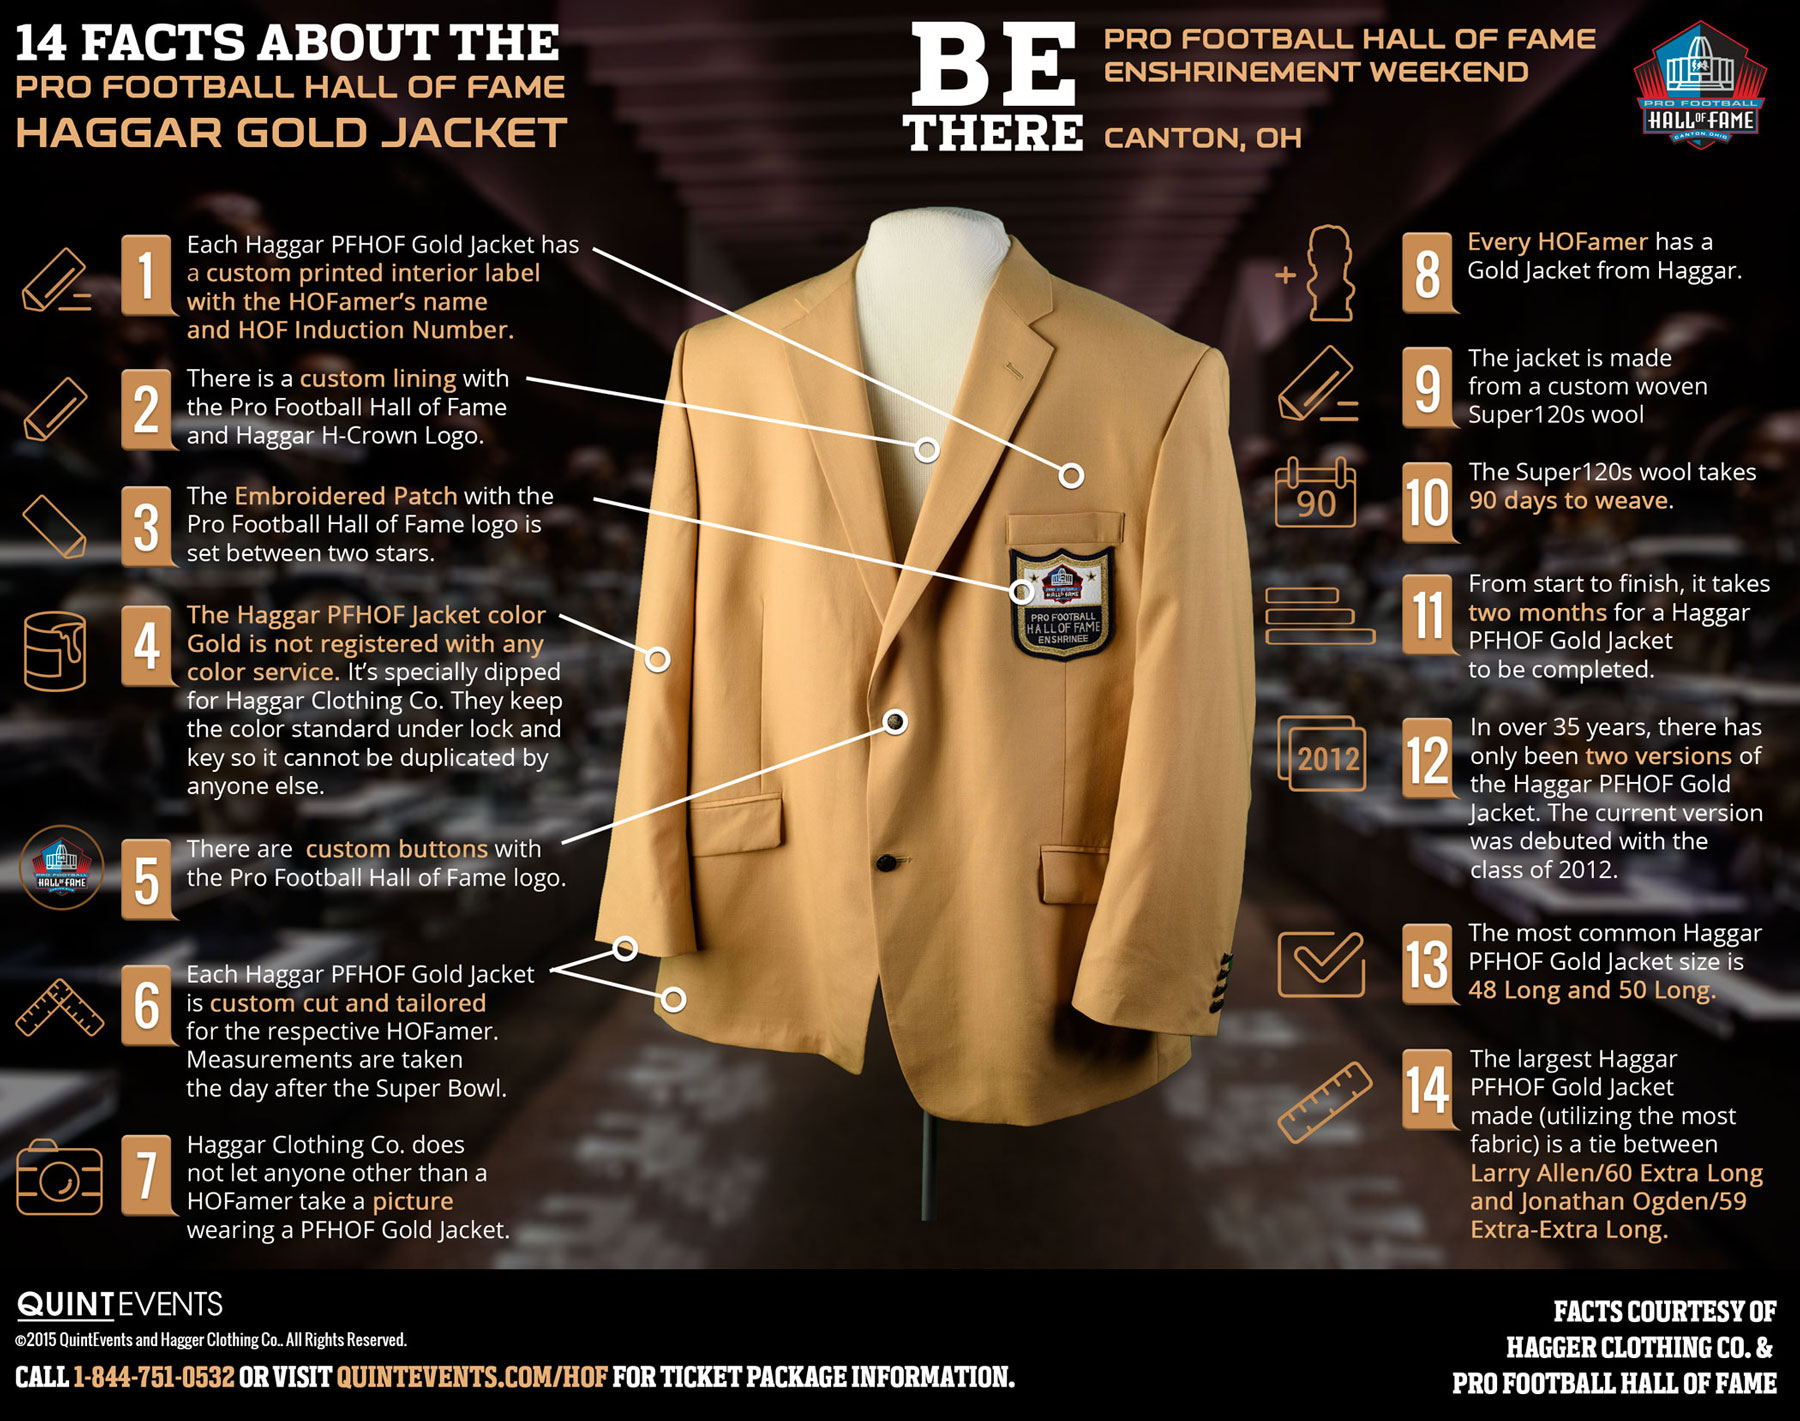 newest 2a39b b54c9 Hall of Fame Facts   Pro Football Hall of Fame Experiences